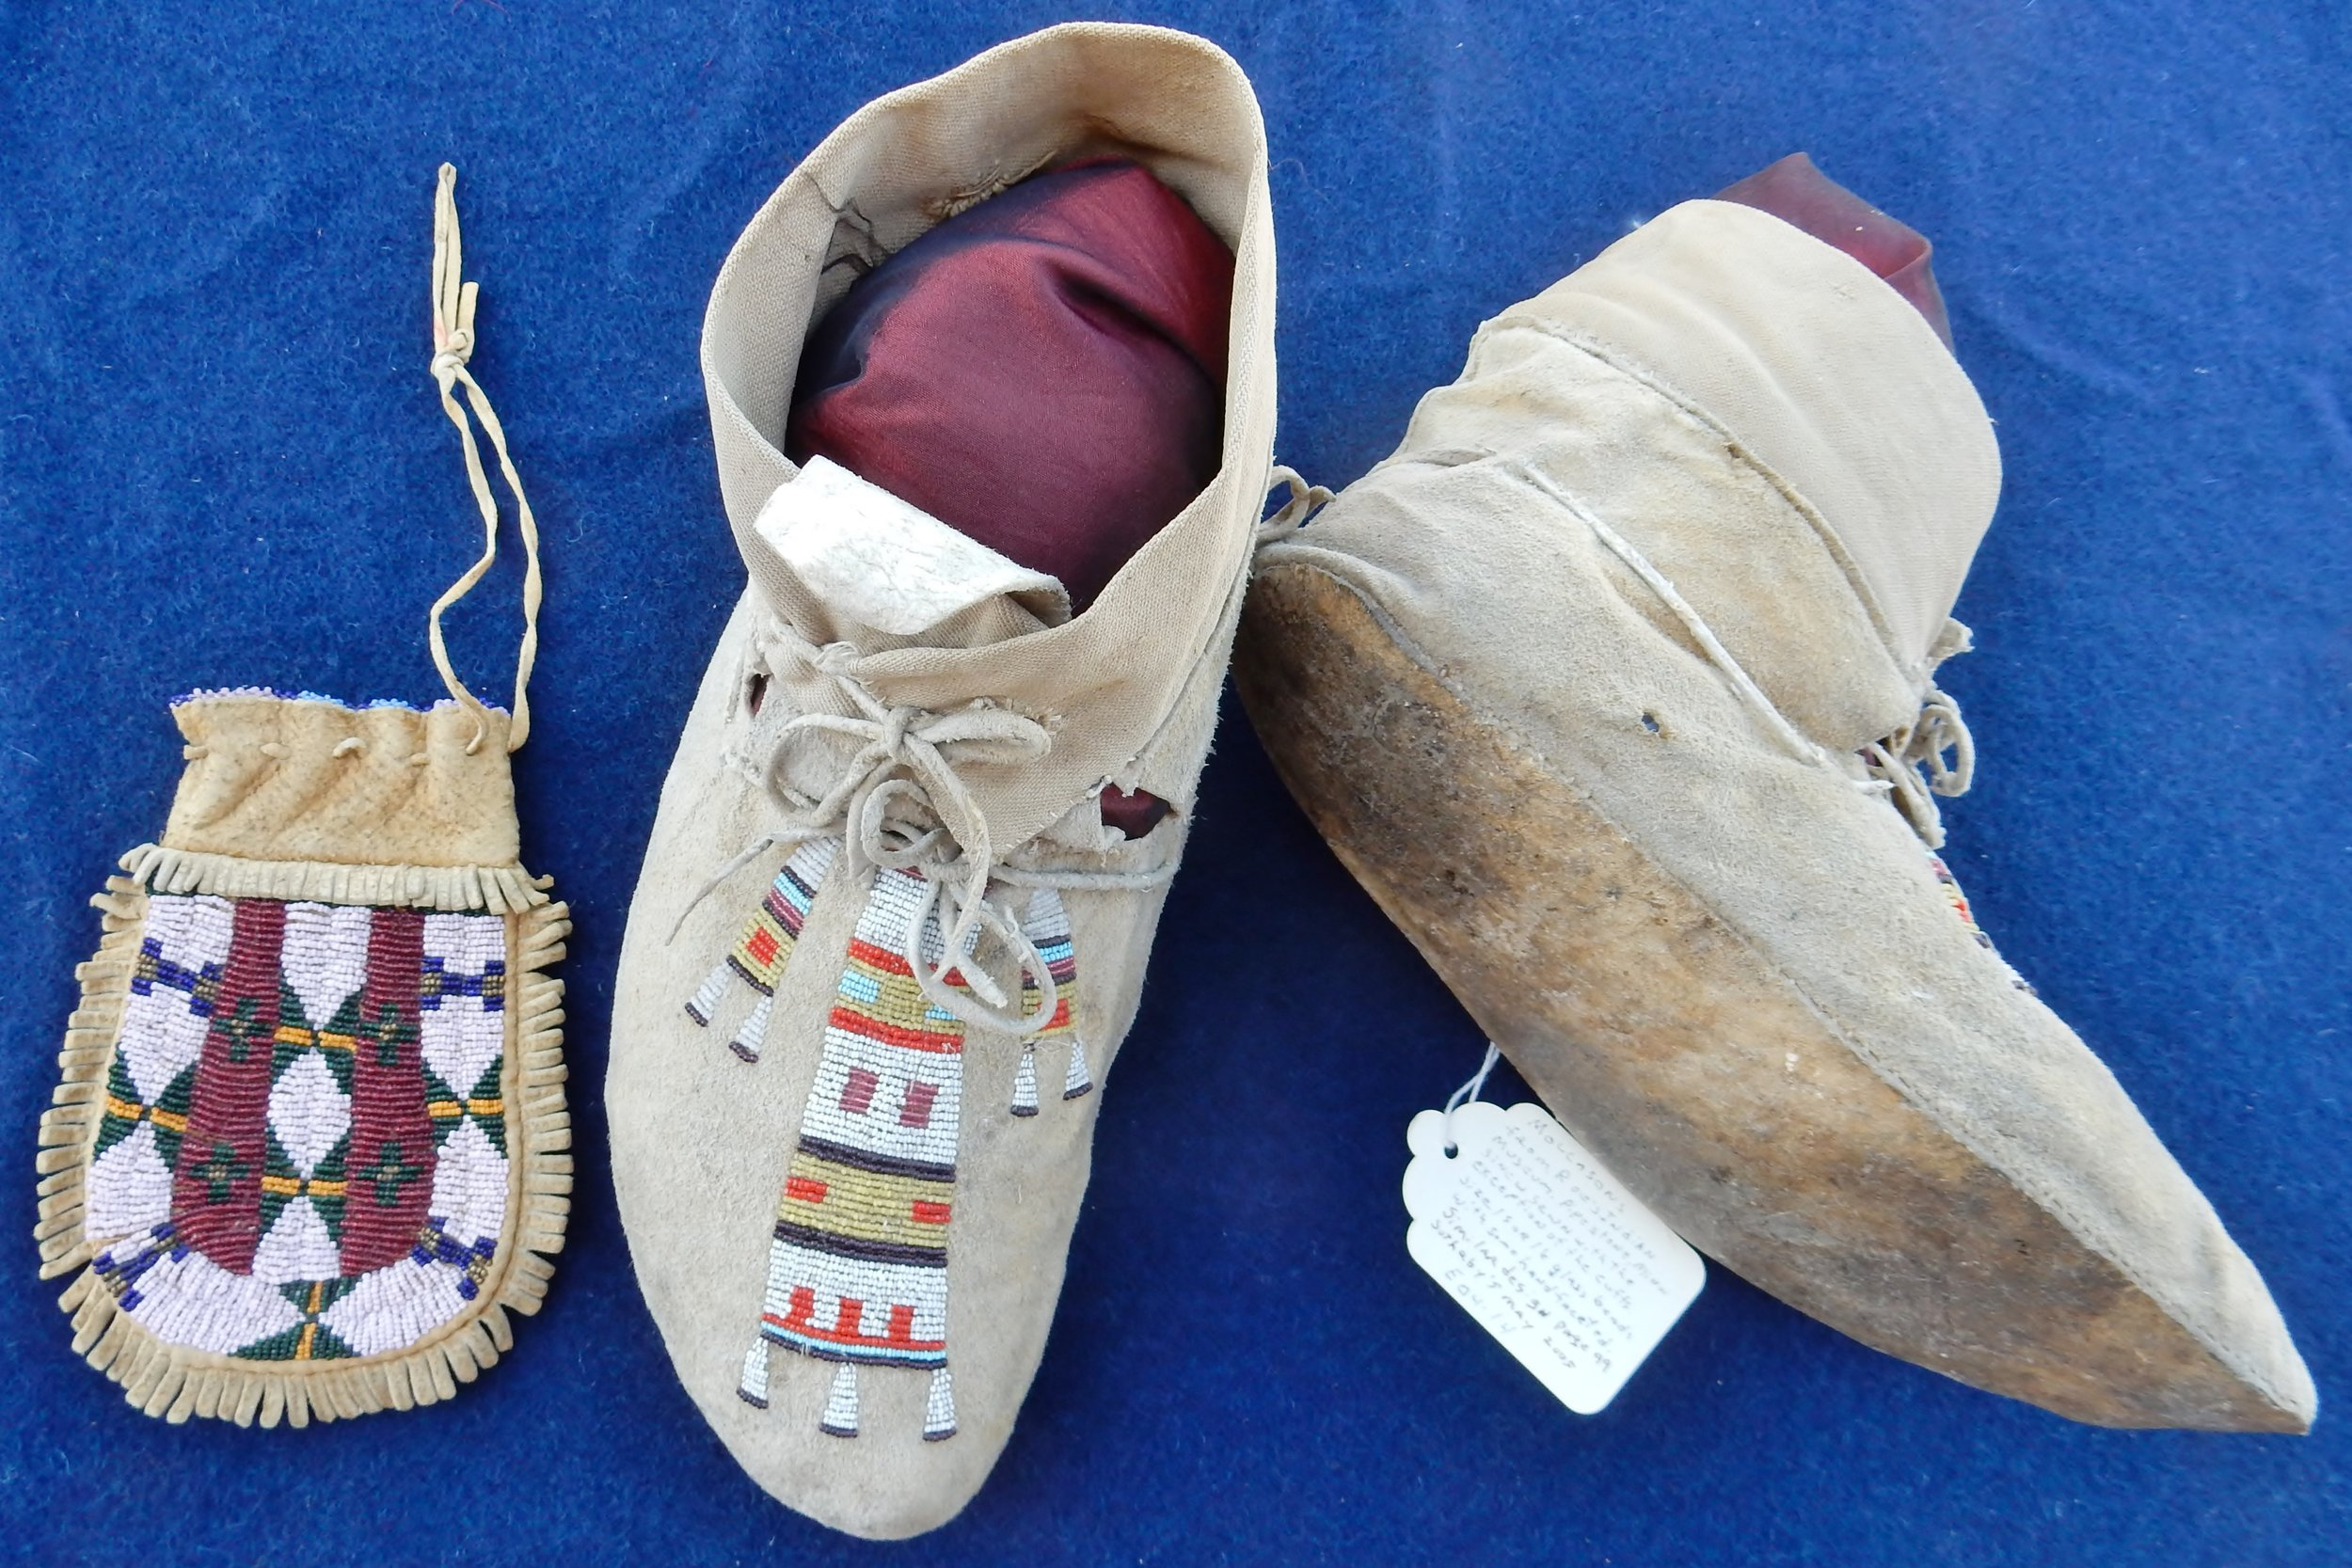 Cheyenne pouch and a pair of moccasins with extra-small size 18 cut beads